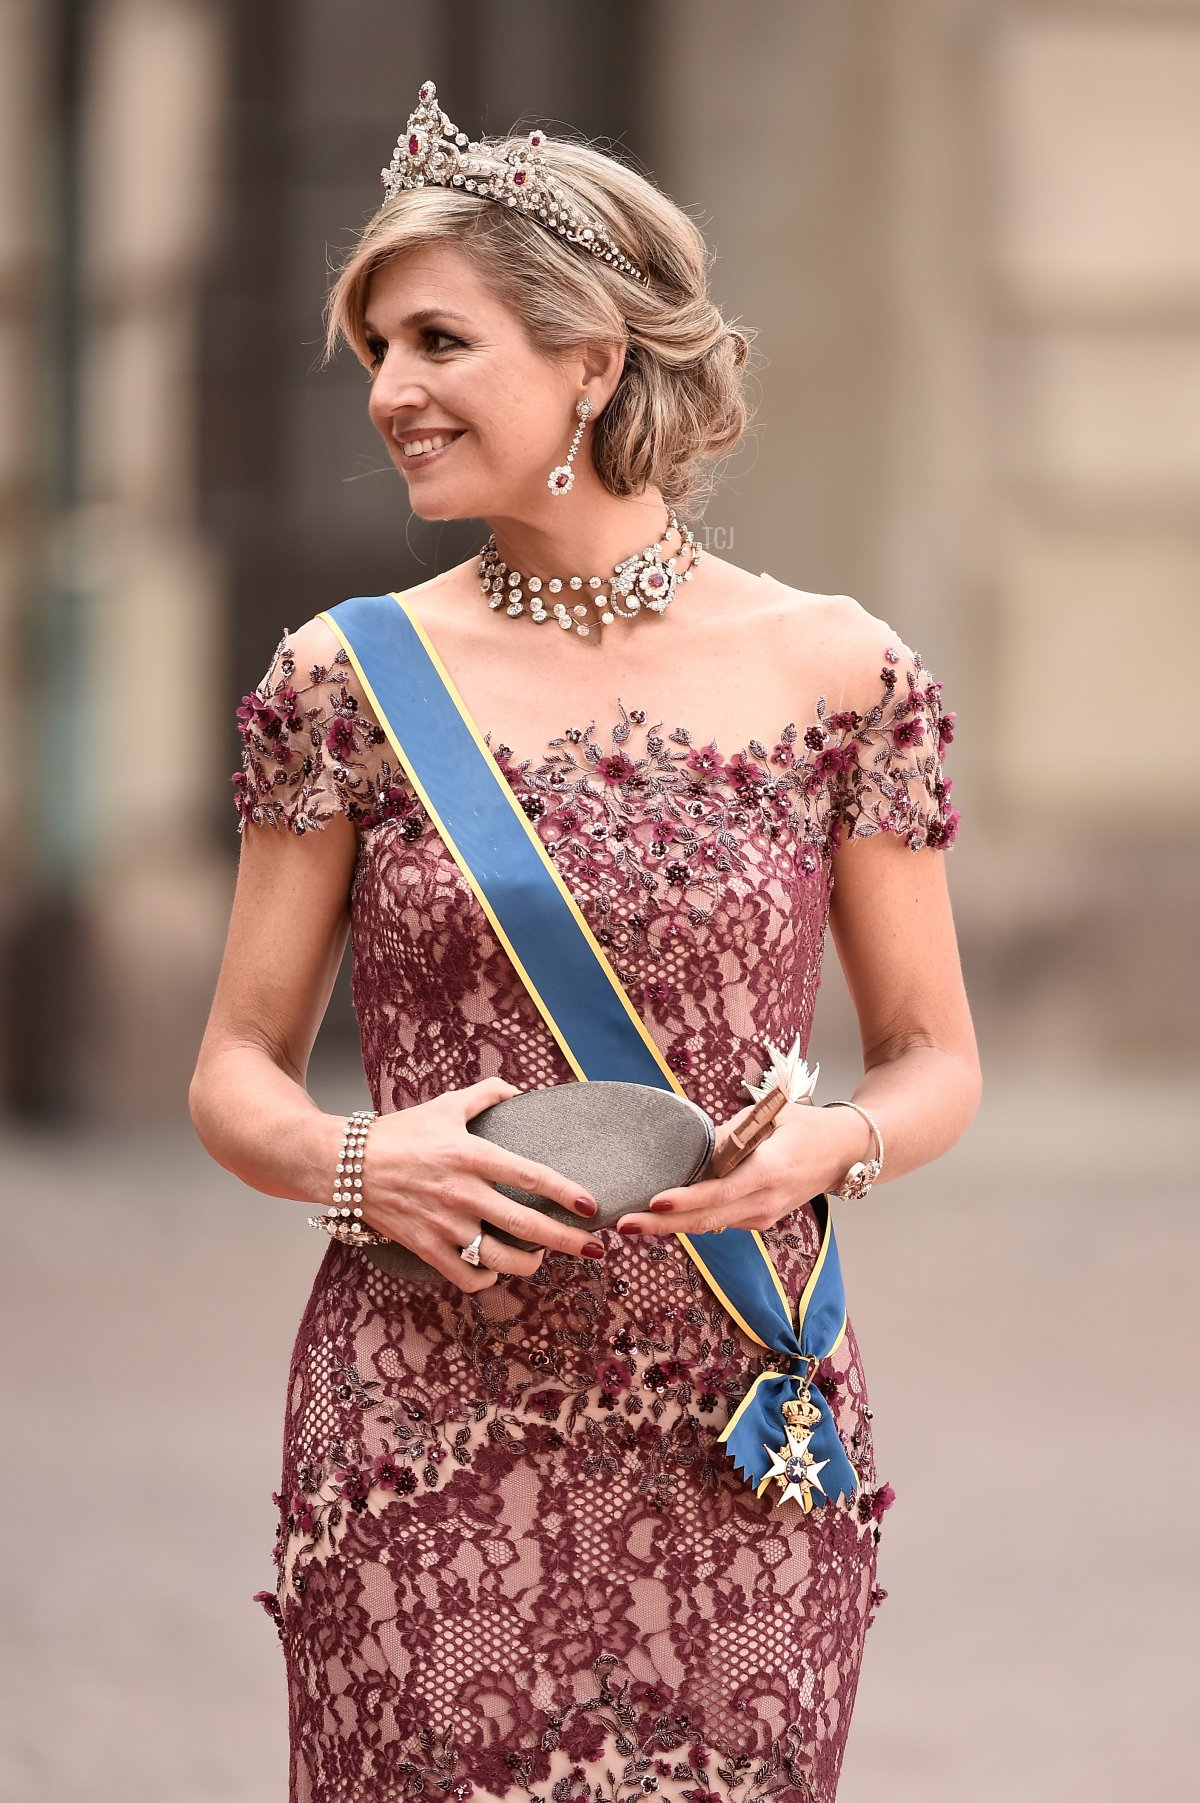 Queen Maxima of the Netherlands attends the royal wedding of Prince Carl Philip of Sweden and Sofia Hellqvist at The Royal Palace on June 13, 2015 in Stockholm, Sweden